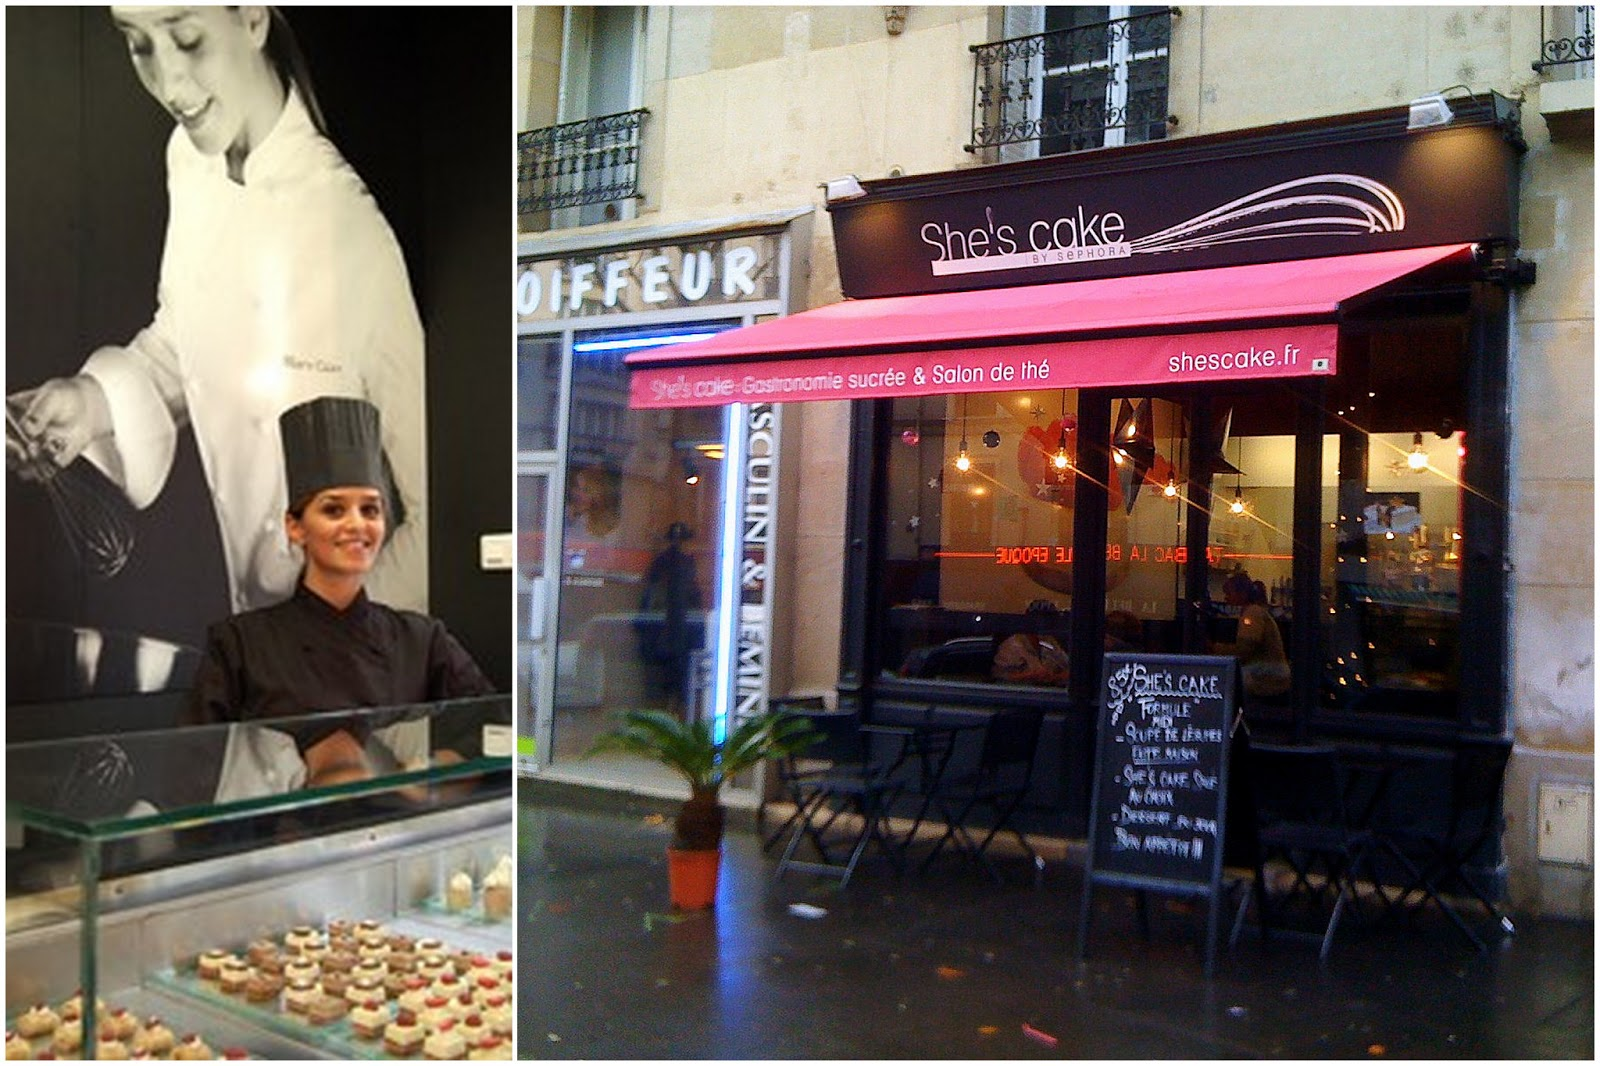 Mes Adresses  Shes cake by Sphora le cheesecake arien  ptisserie salon de th  20